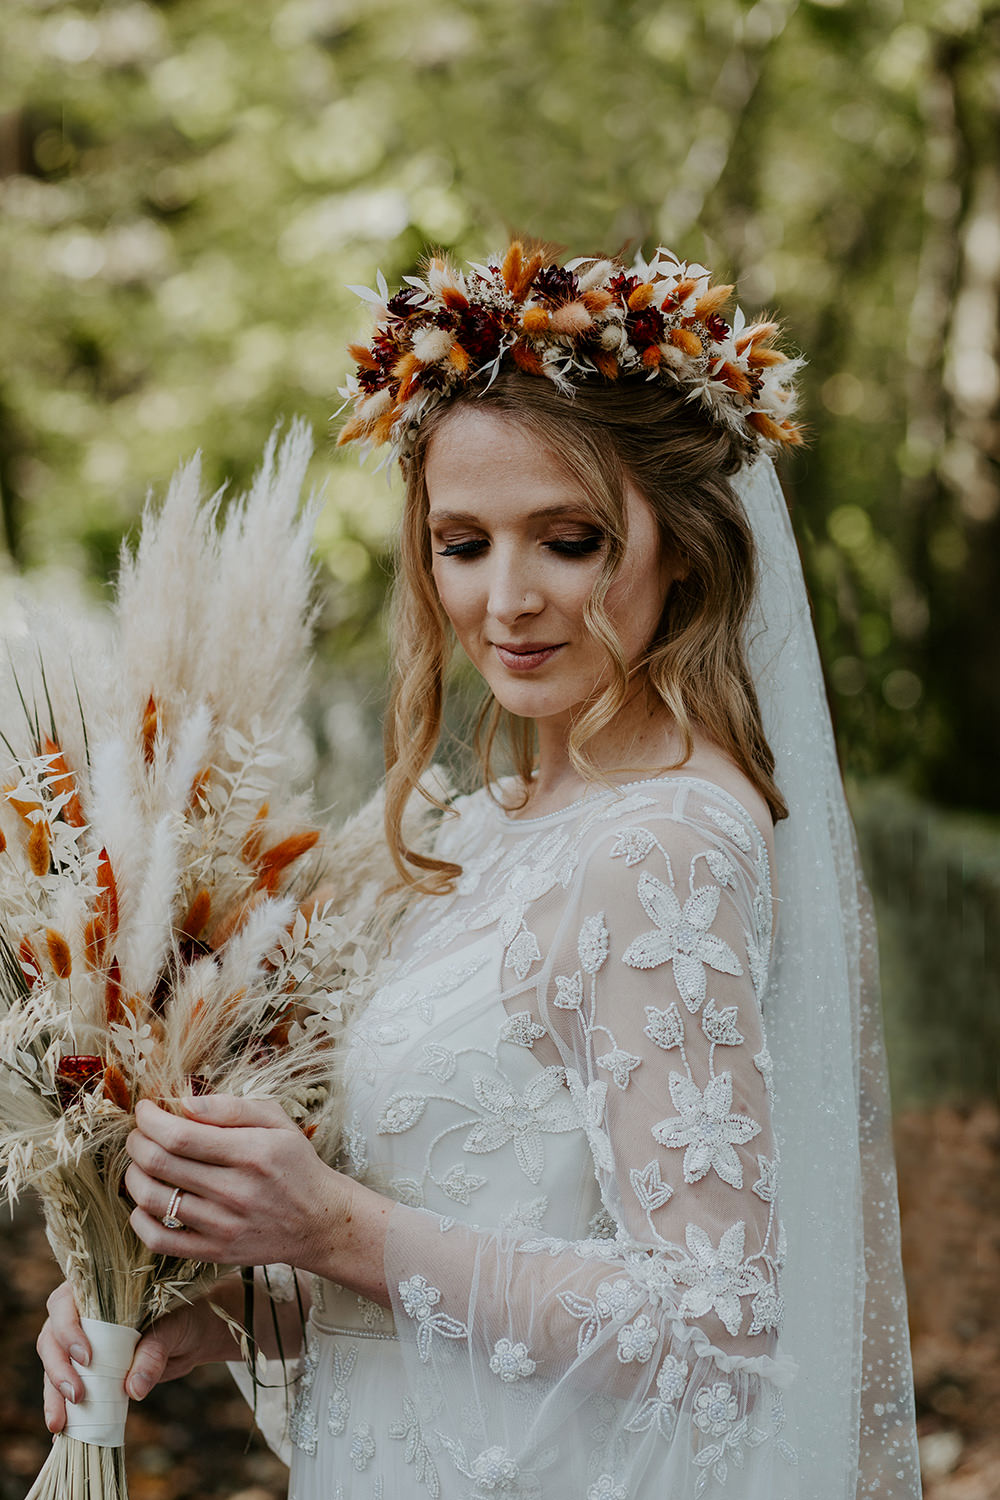 Bride Bridal Make Up Boho Wedding Ideas The Enlight Project